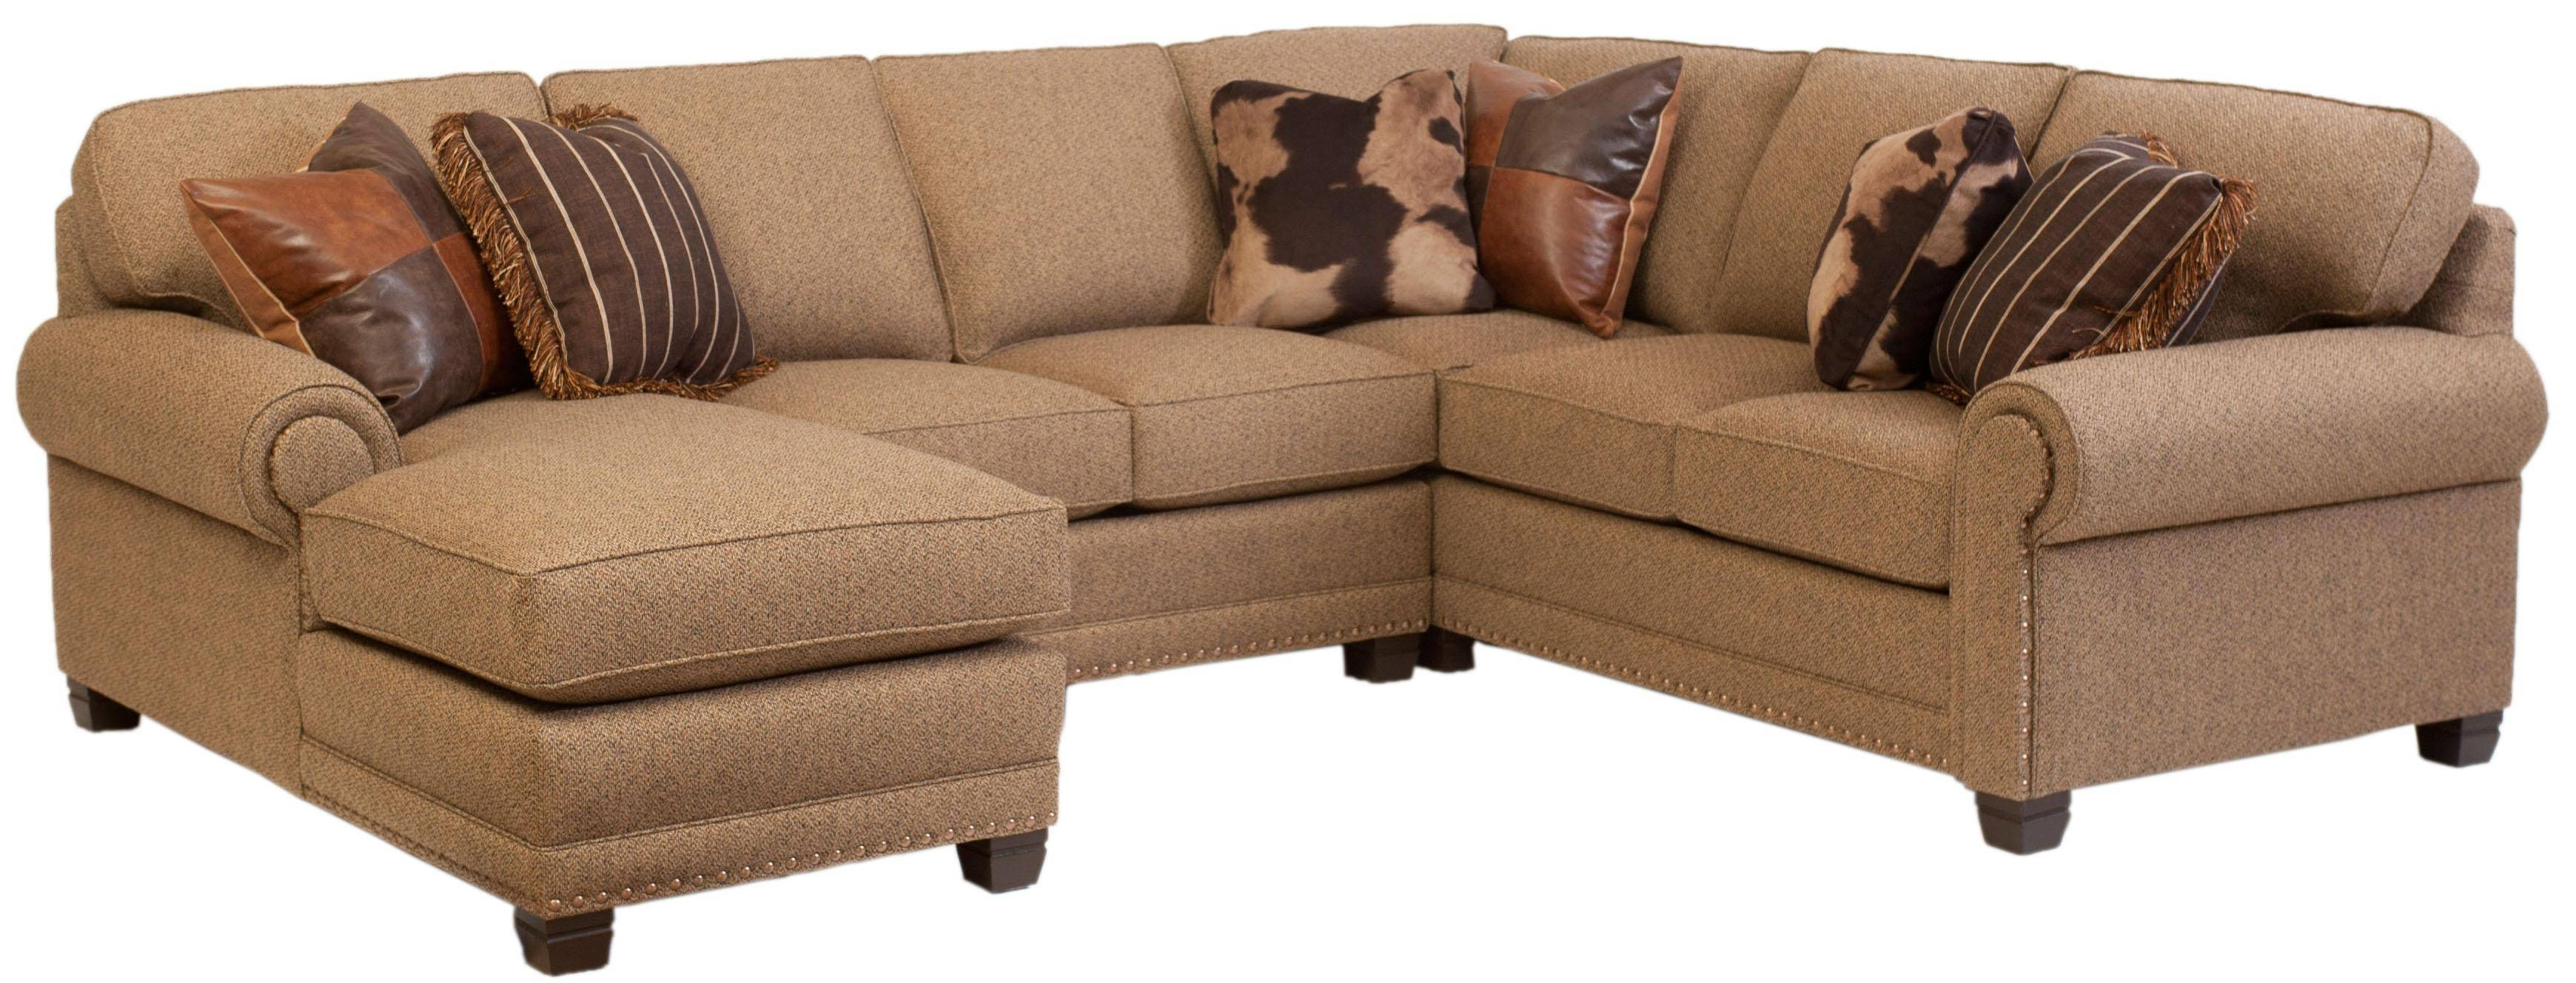 Traditional 3-Piece Sectional Sofa With Left-Arm-Facing Chaise inside Traditional Sectional Sofas Living Room Furniture (Image 17 of 25)